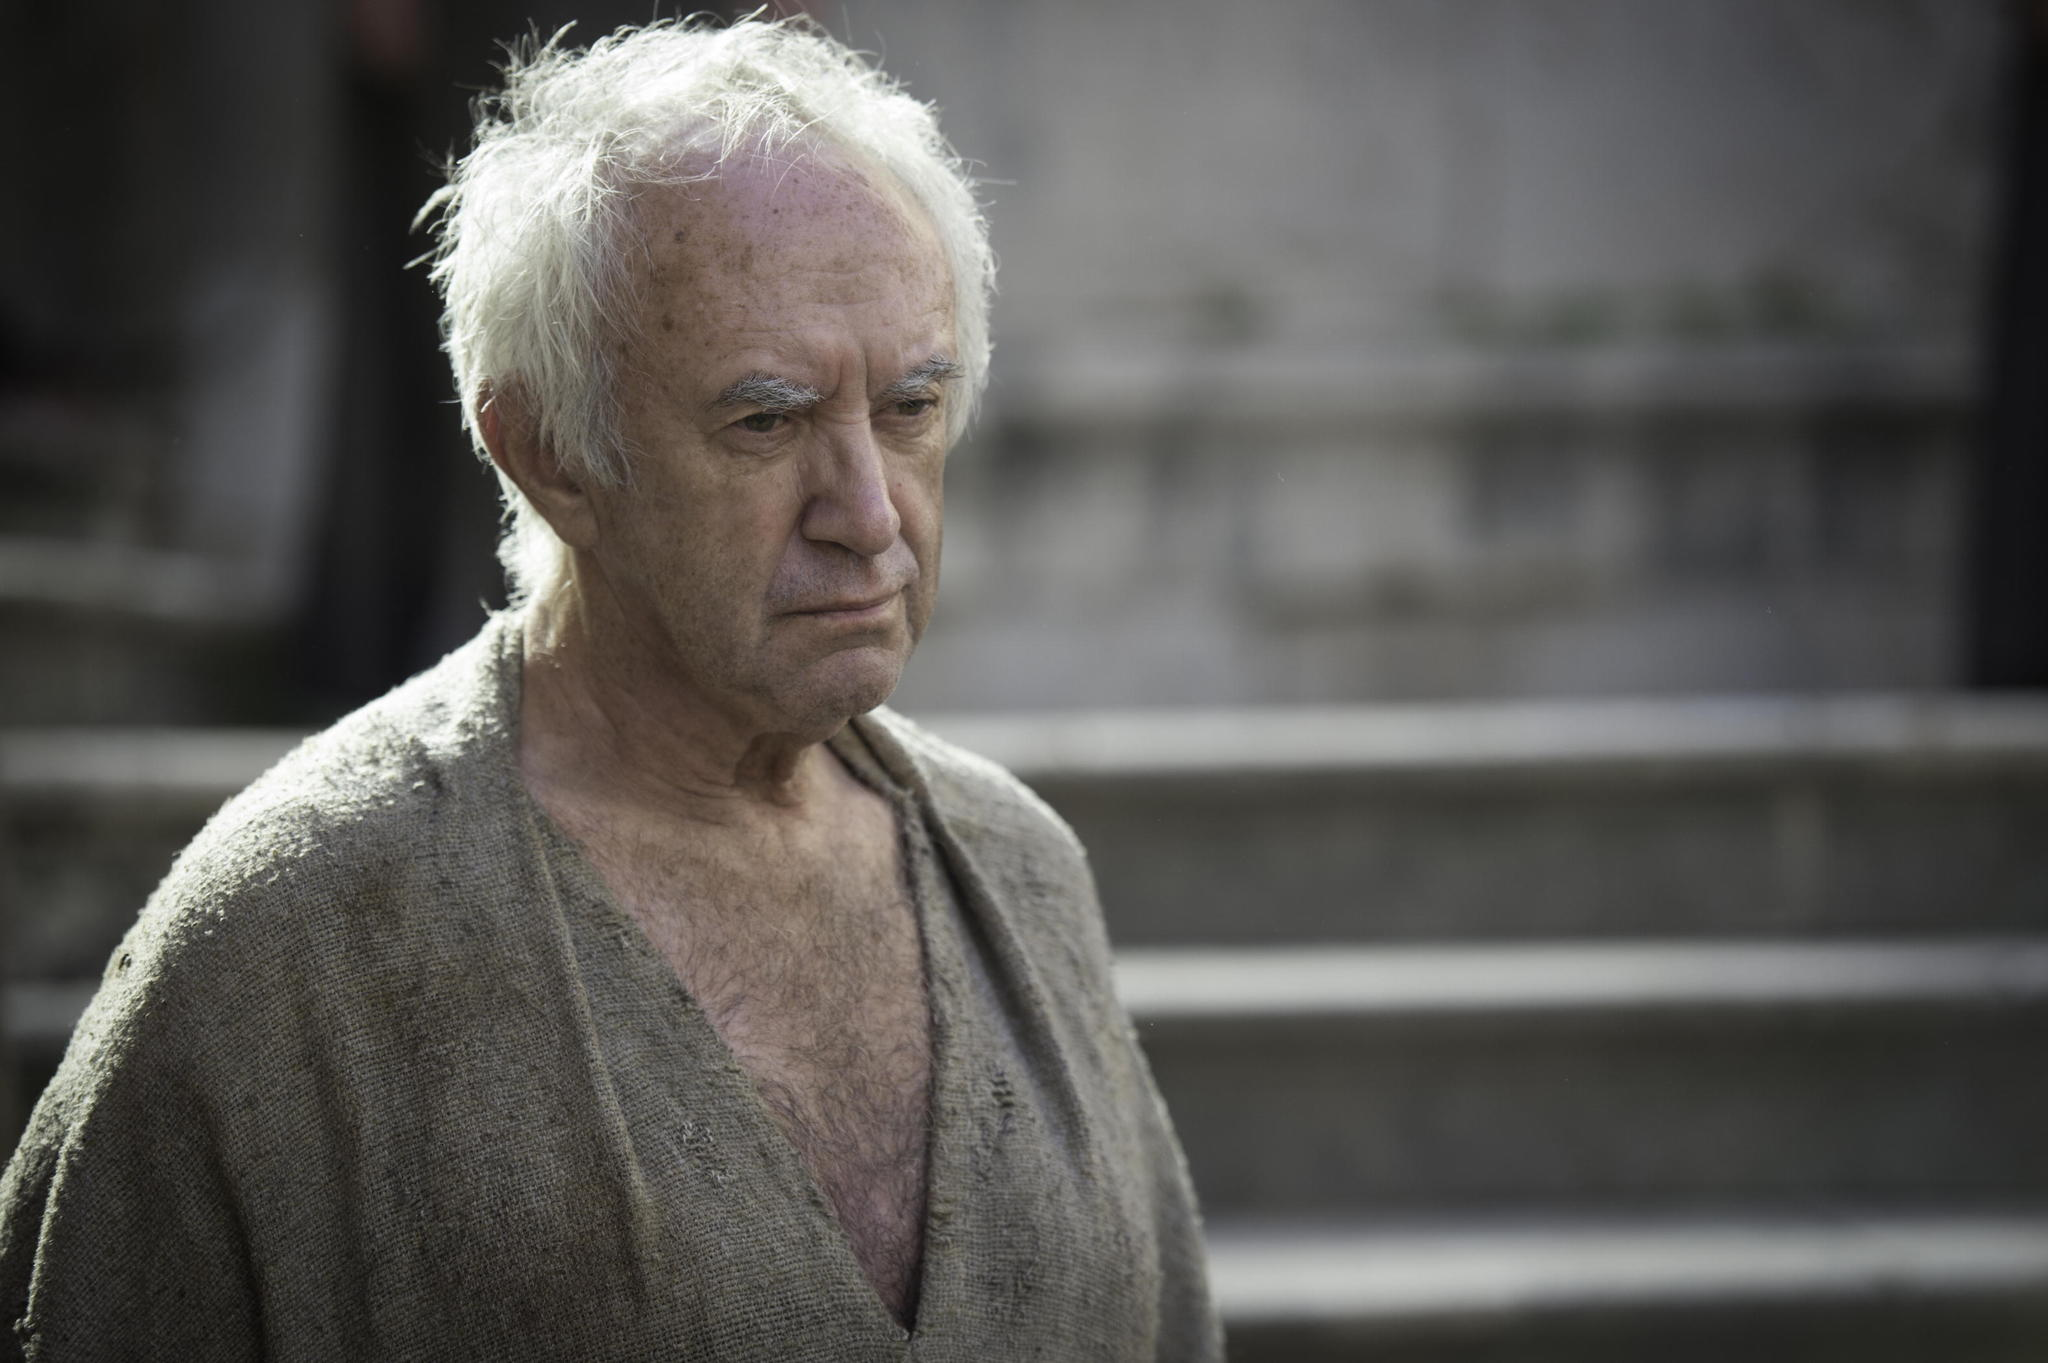 Jonathan Pryce in Game of Thrones (2011)